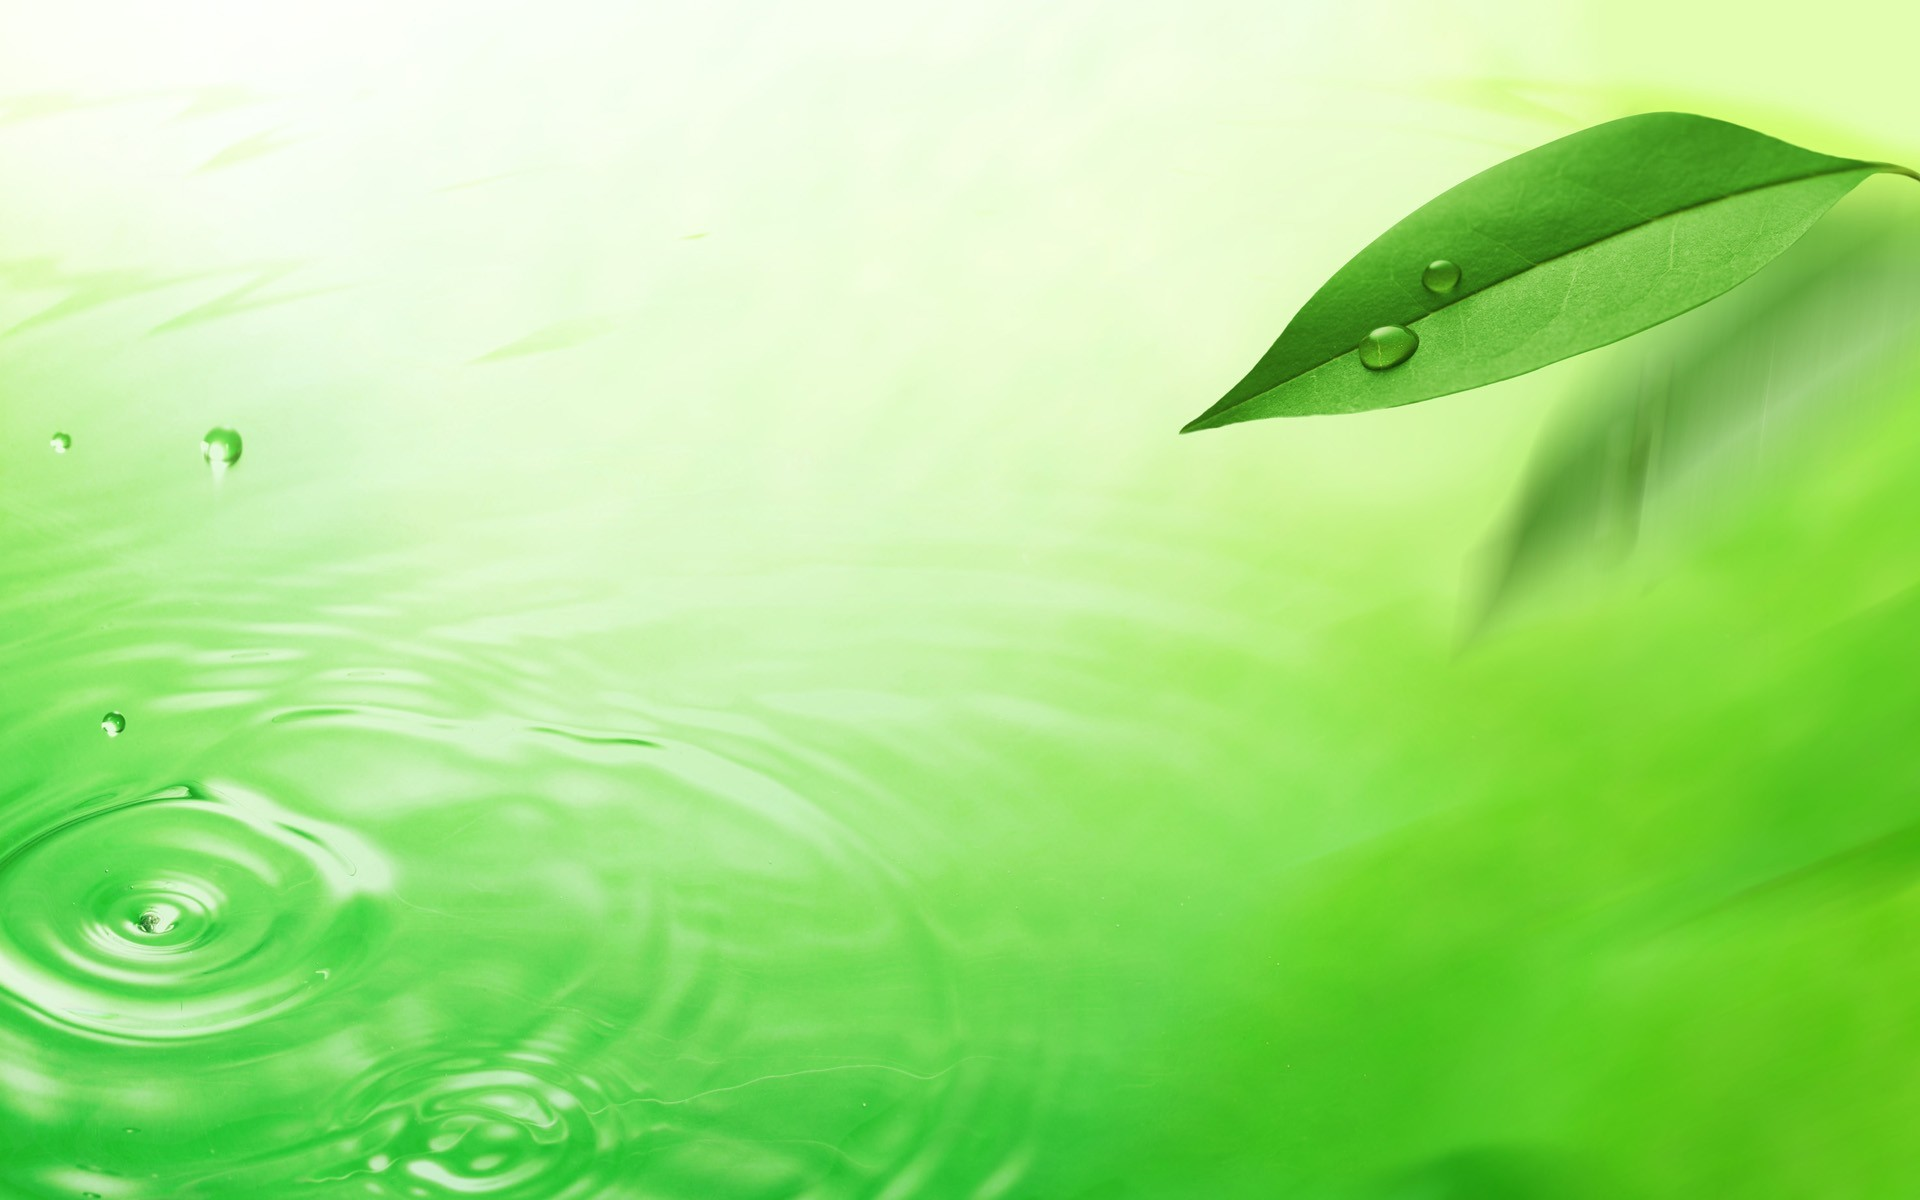 green, texture, photo, background, download, green leaf texture